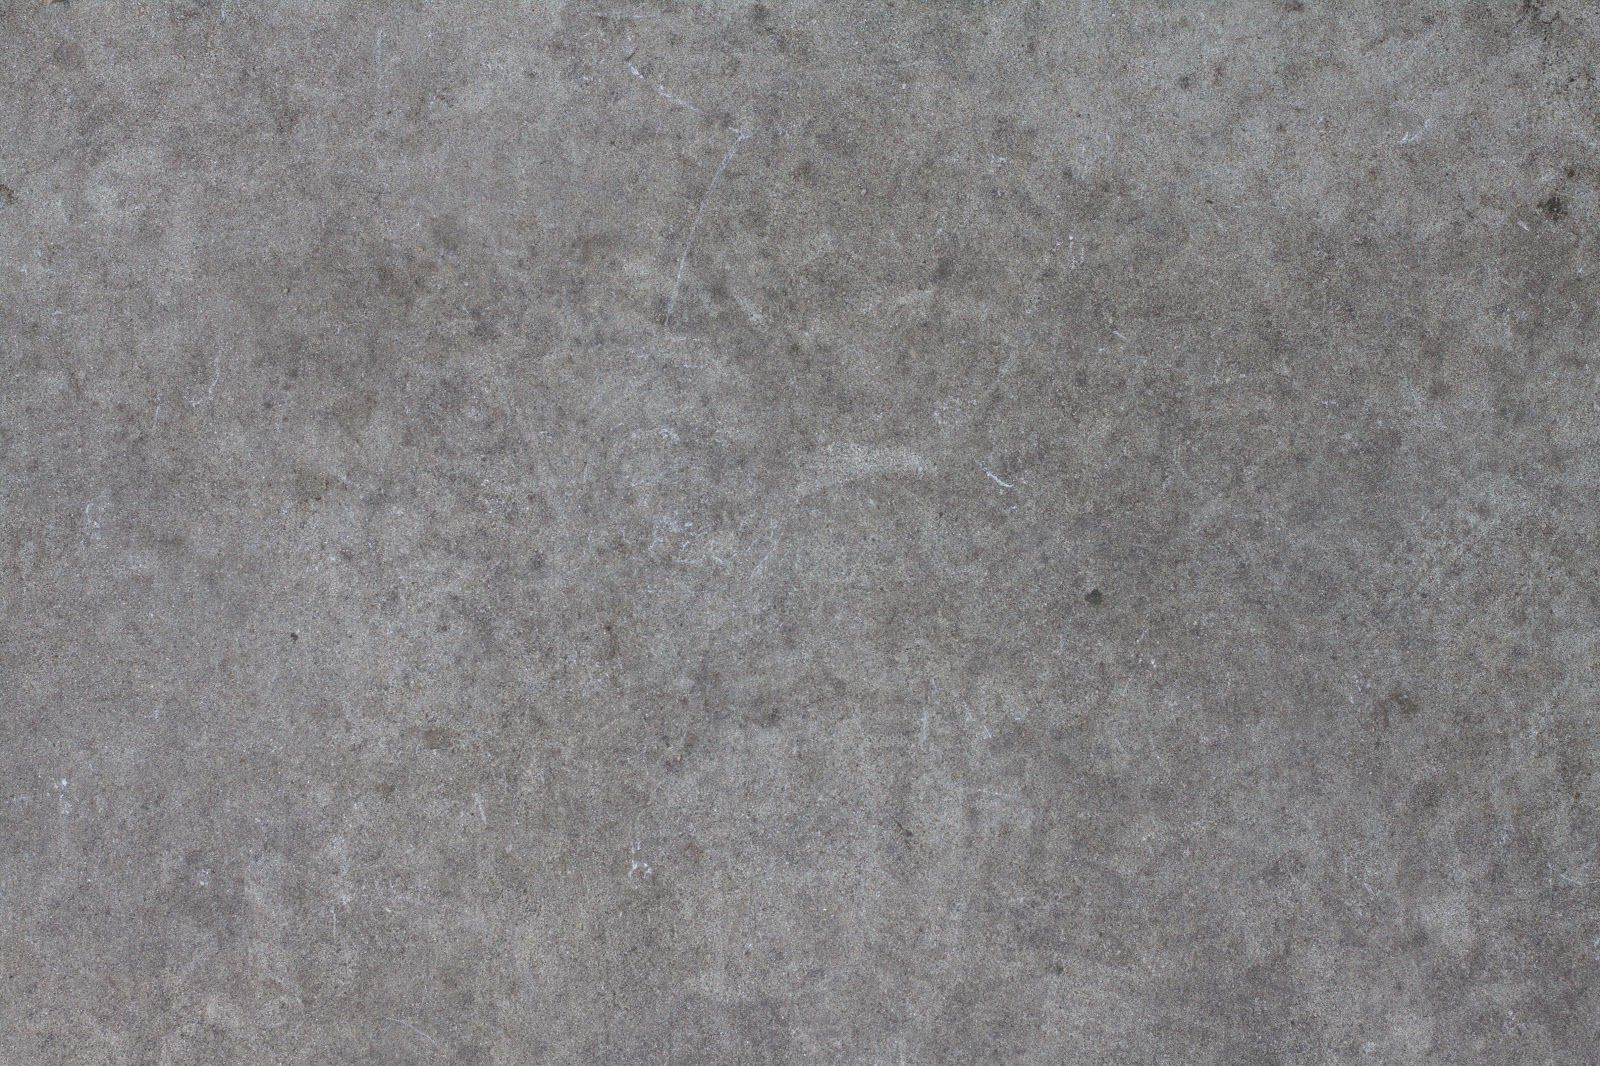 High Resolution Seamless Textures Concrete 4 wall smooth dirt